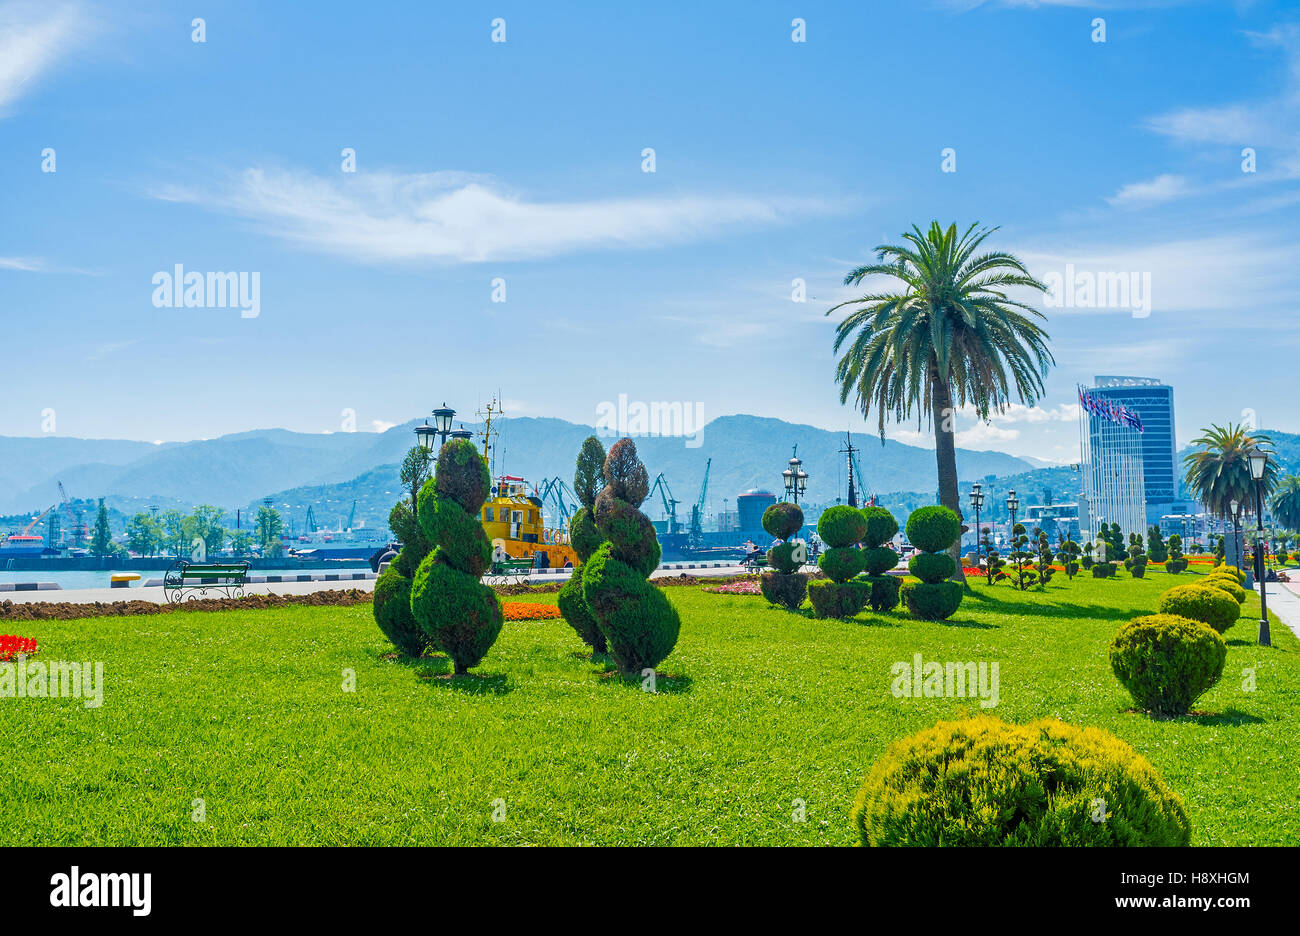 The ornamental French garden with the spiral trimmed trees and constructions of industrial port on the background, - Stock Image